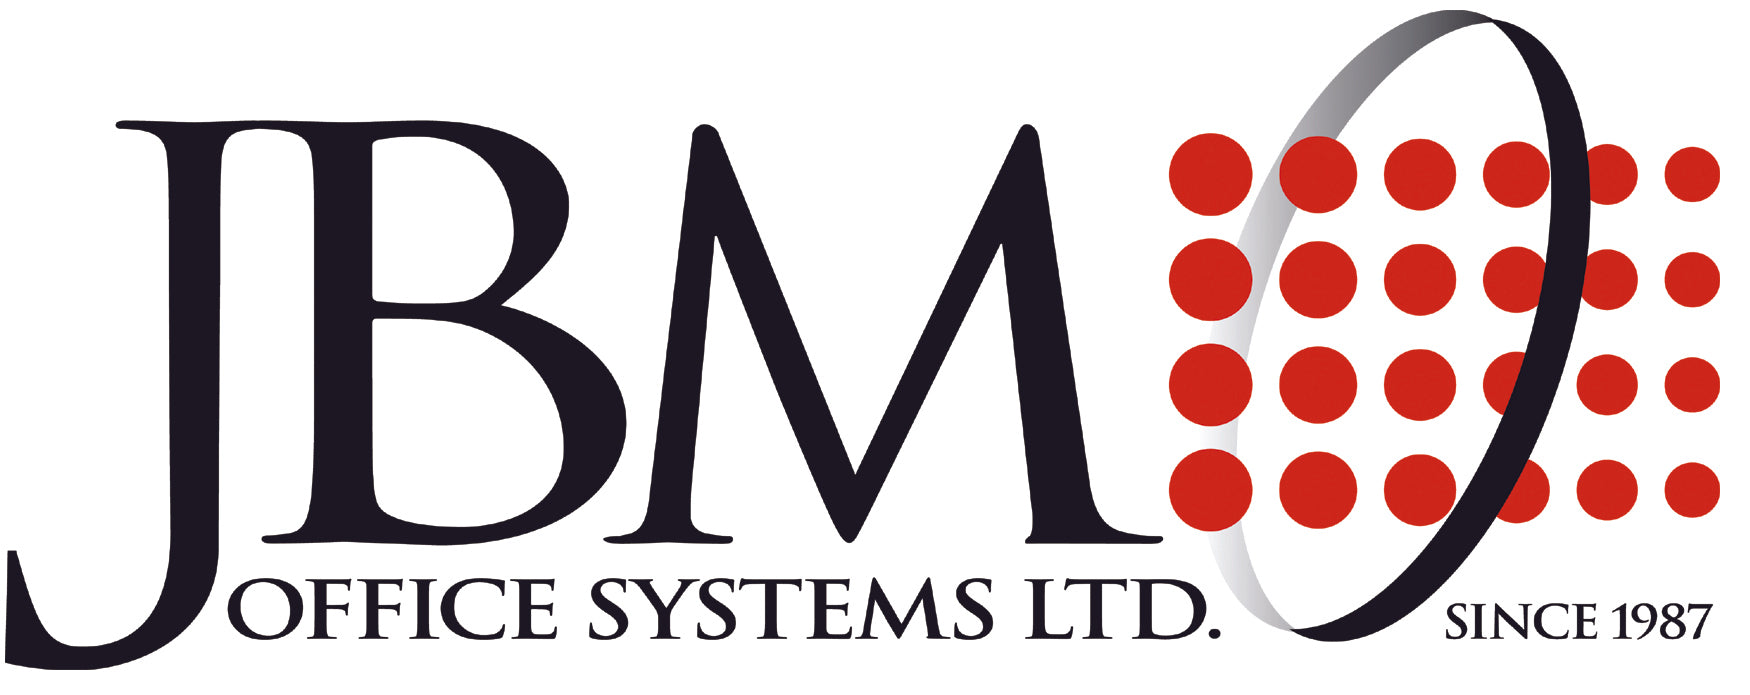 JBM Office Systems Ltd. Logo